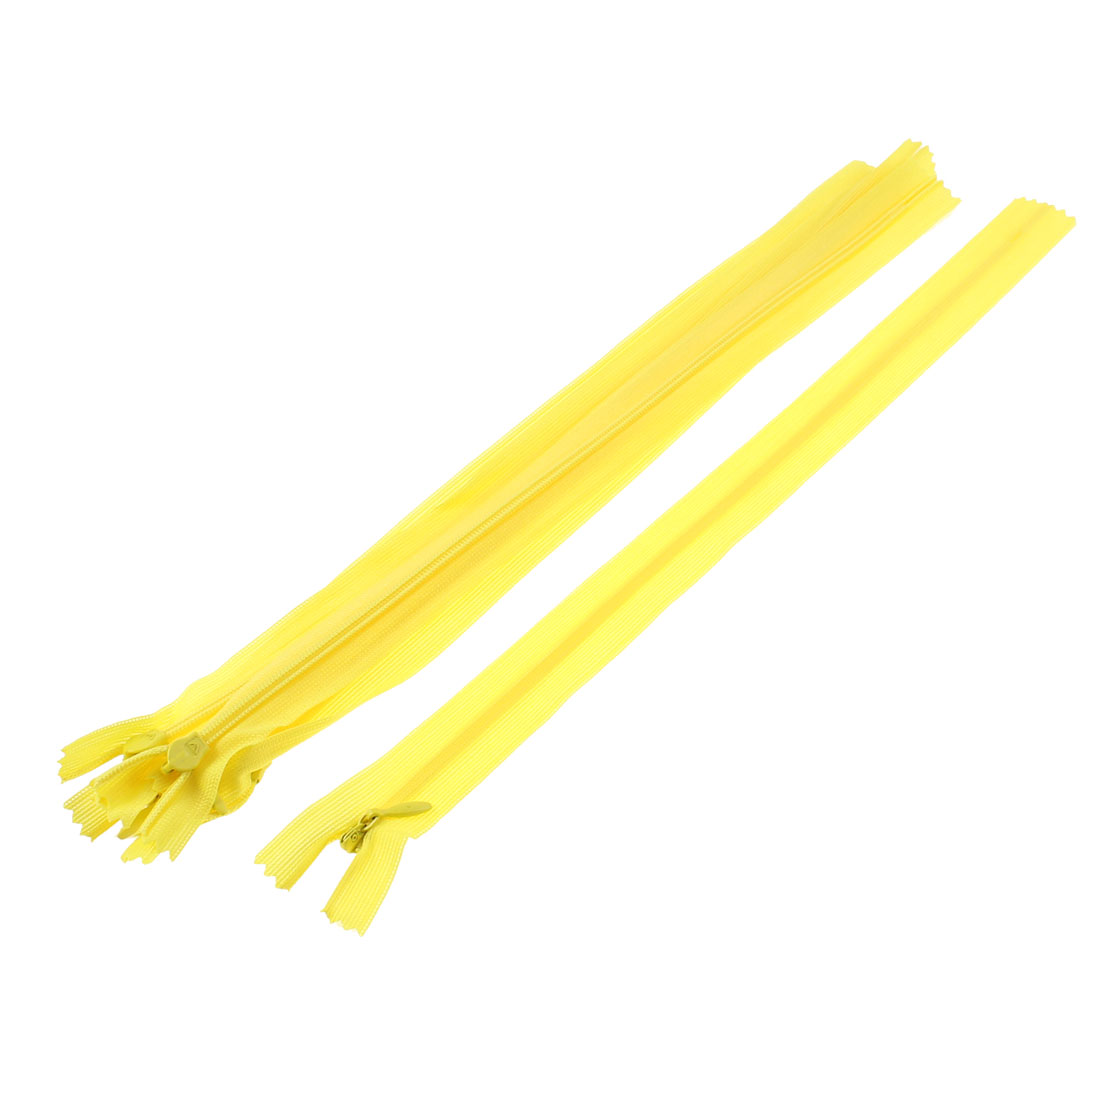 5 Pcs Yellow 12-inch Nylon Zippers Zips for Doll Clothes